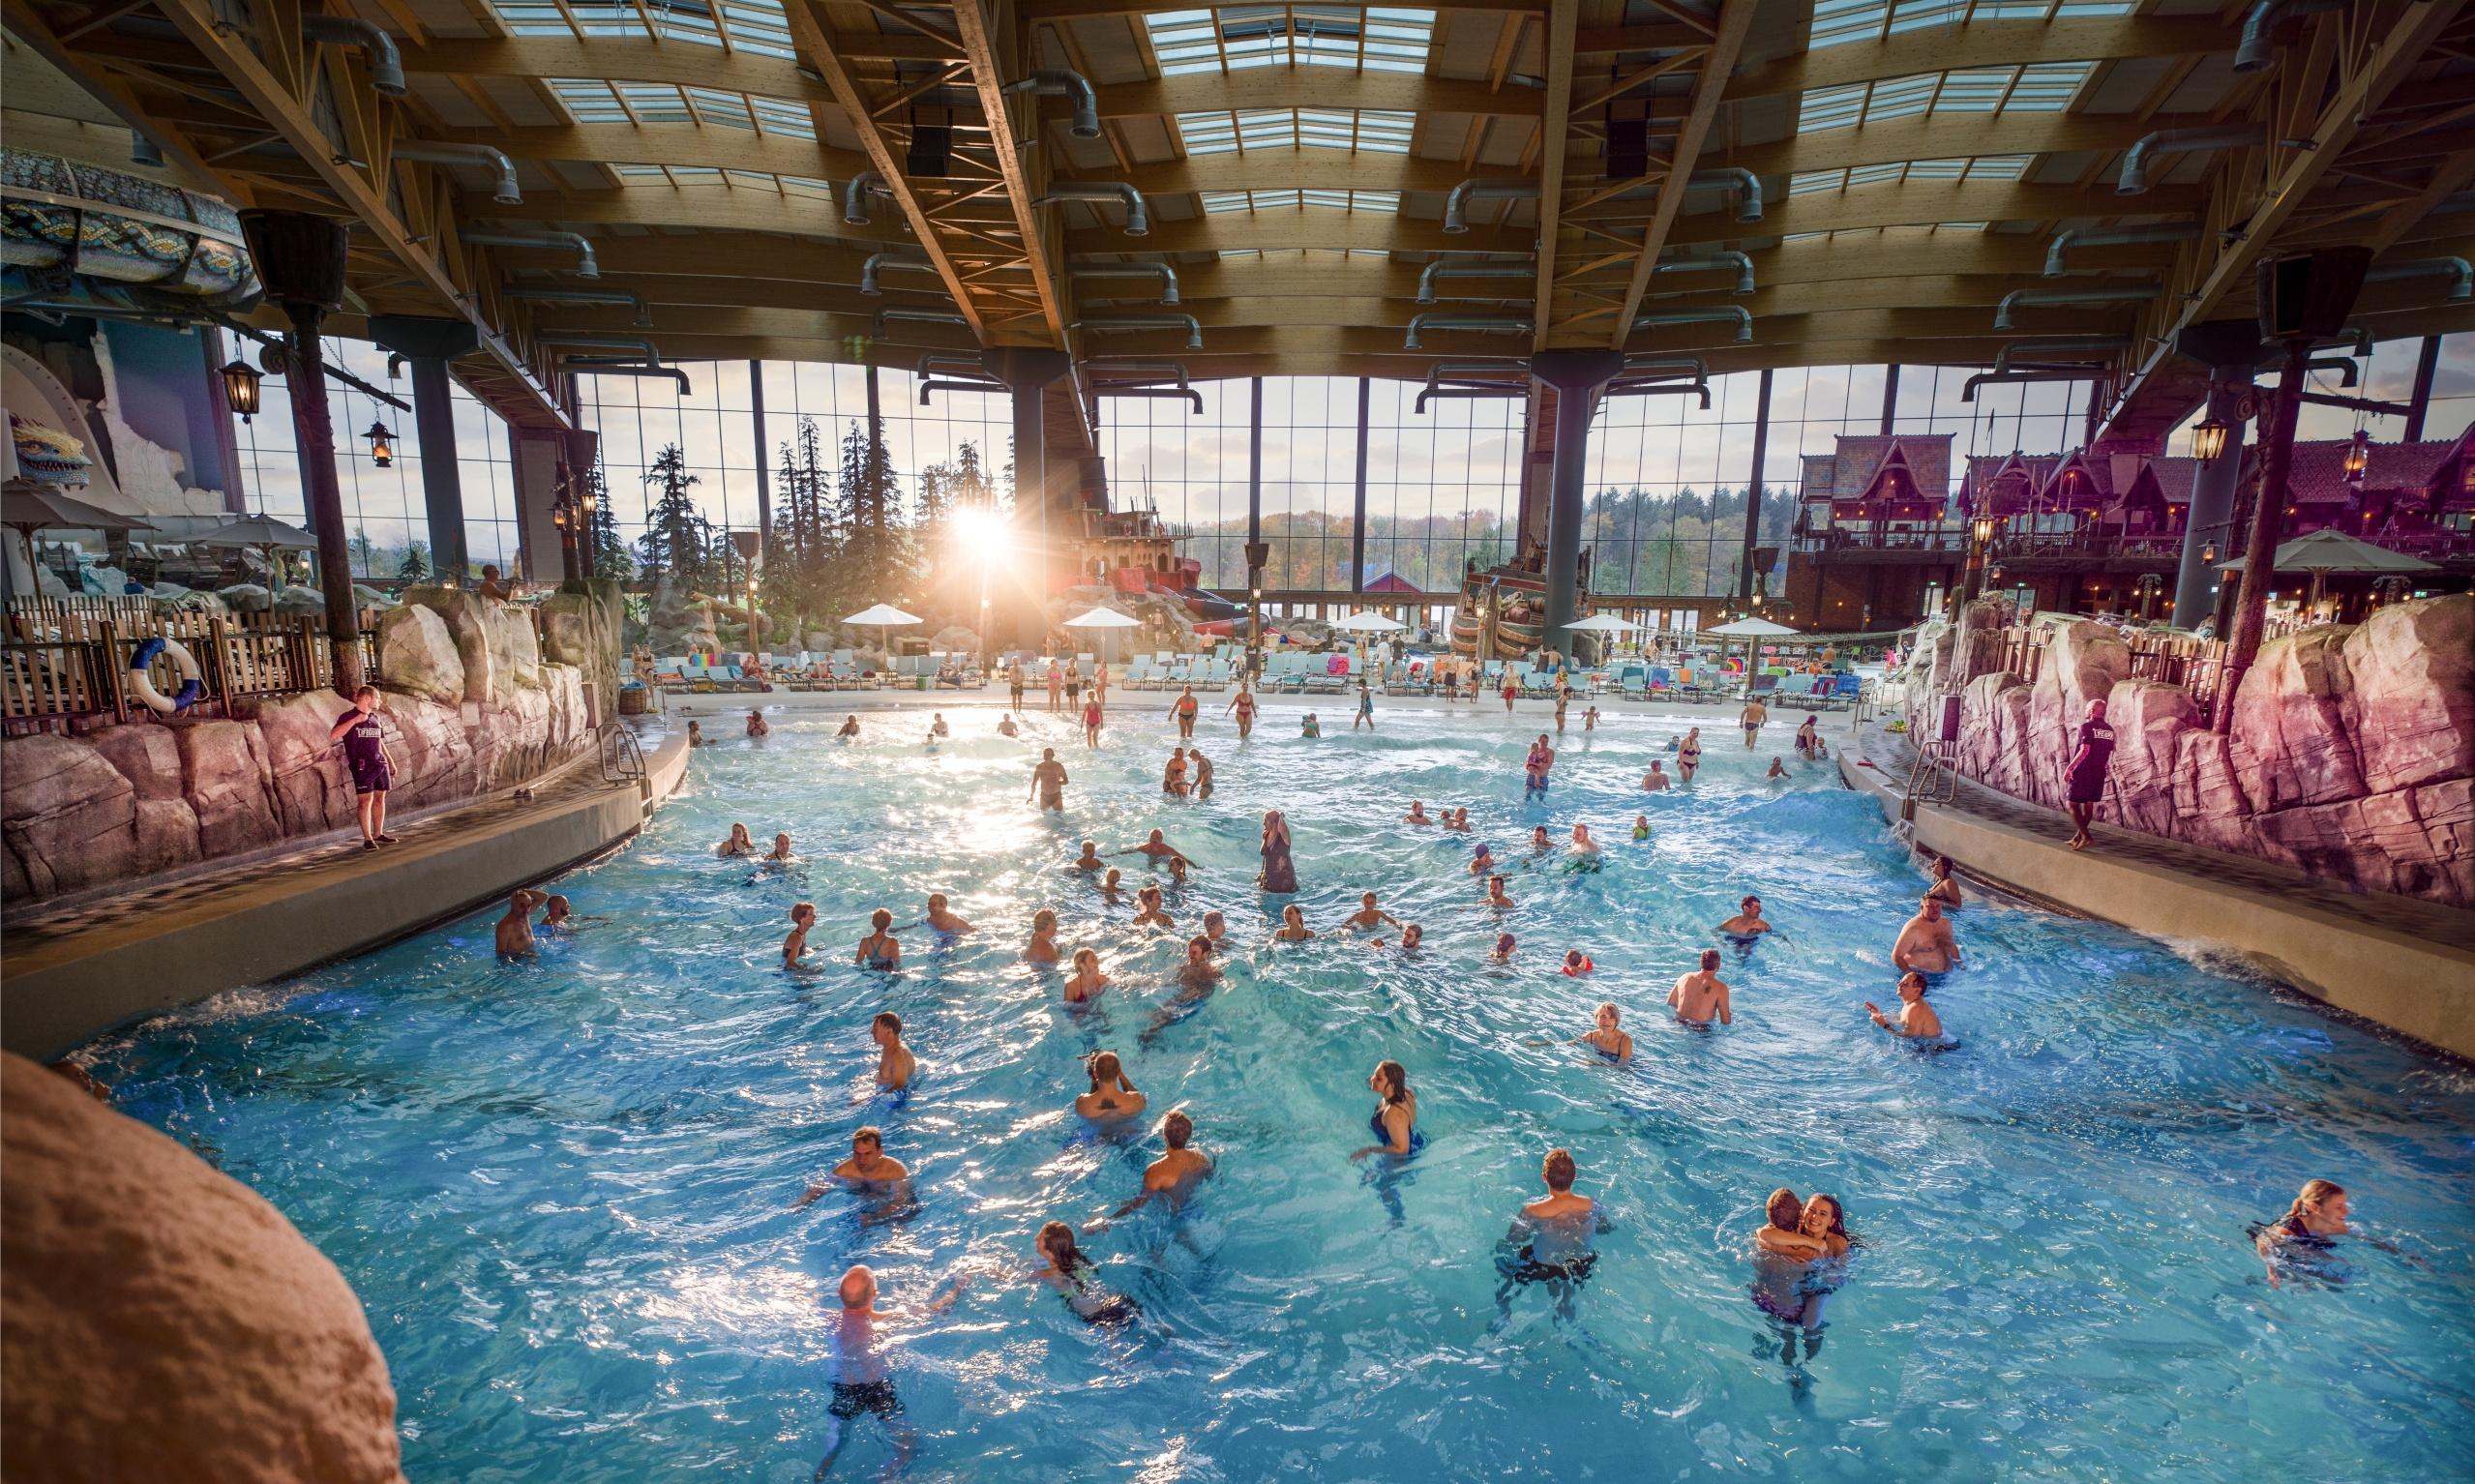 Rulantica, Europa-Park's new indoor water world